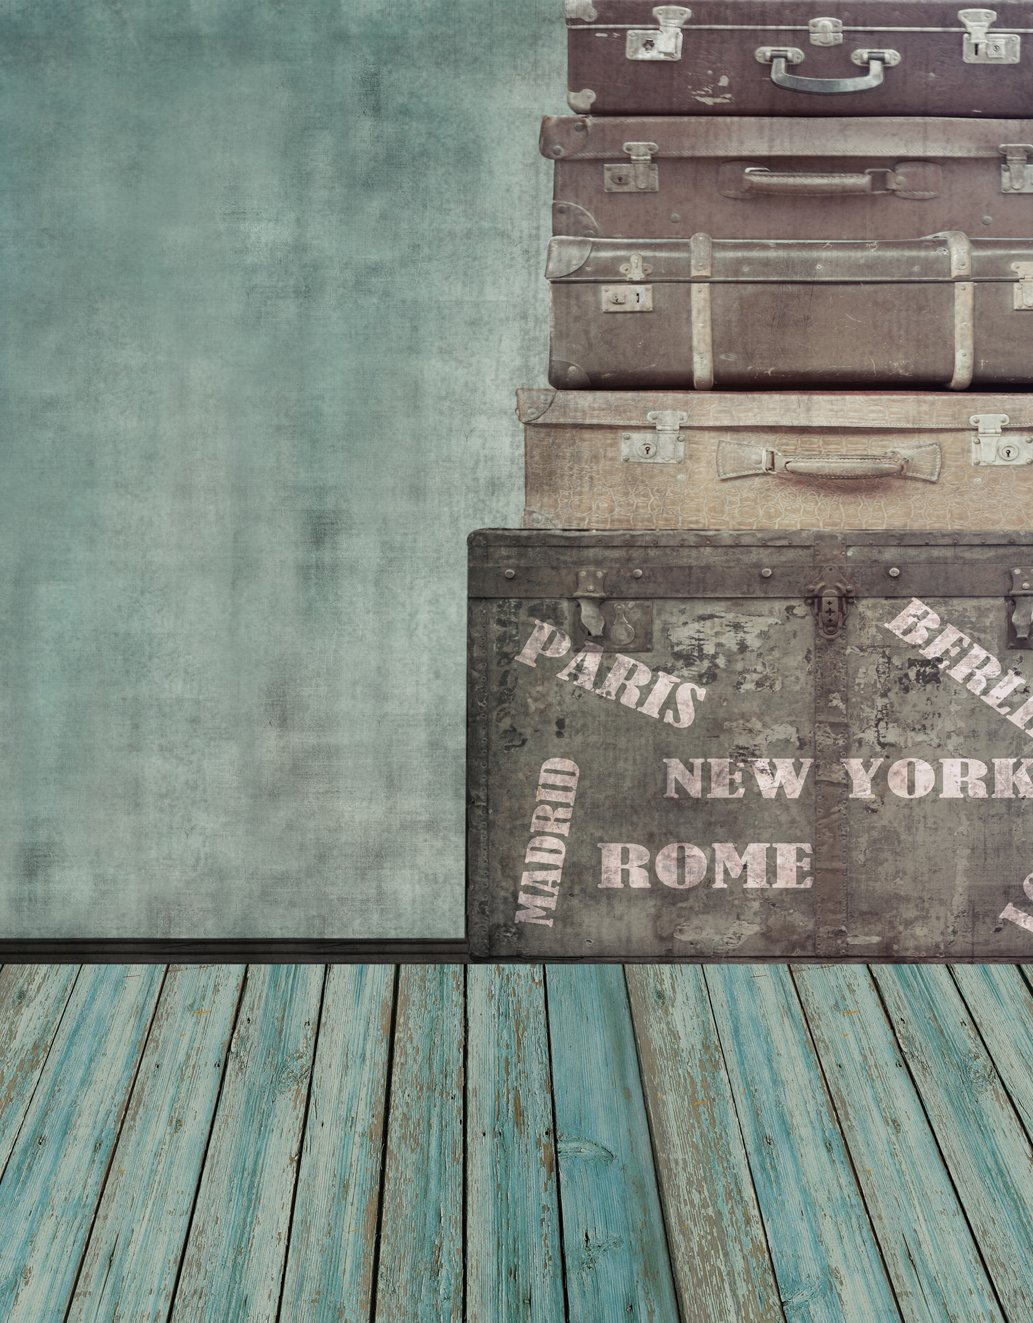 Vintage Wood Suitcase Indoor Vintage Backdrops for Booth Studio Grey Wall with Blue Wooden Floor Photography Background Travel Theme 5×7 ft